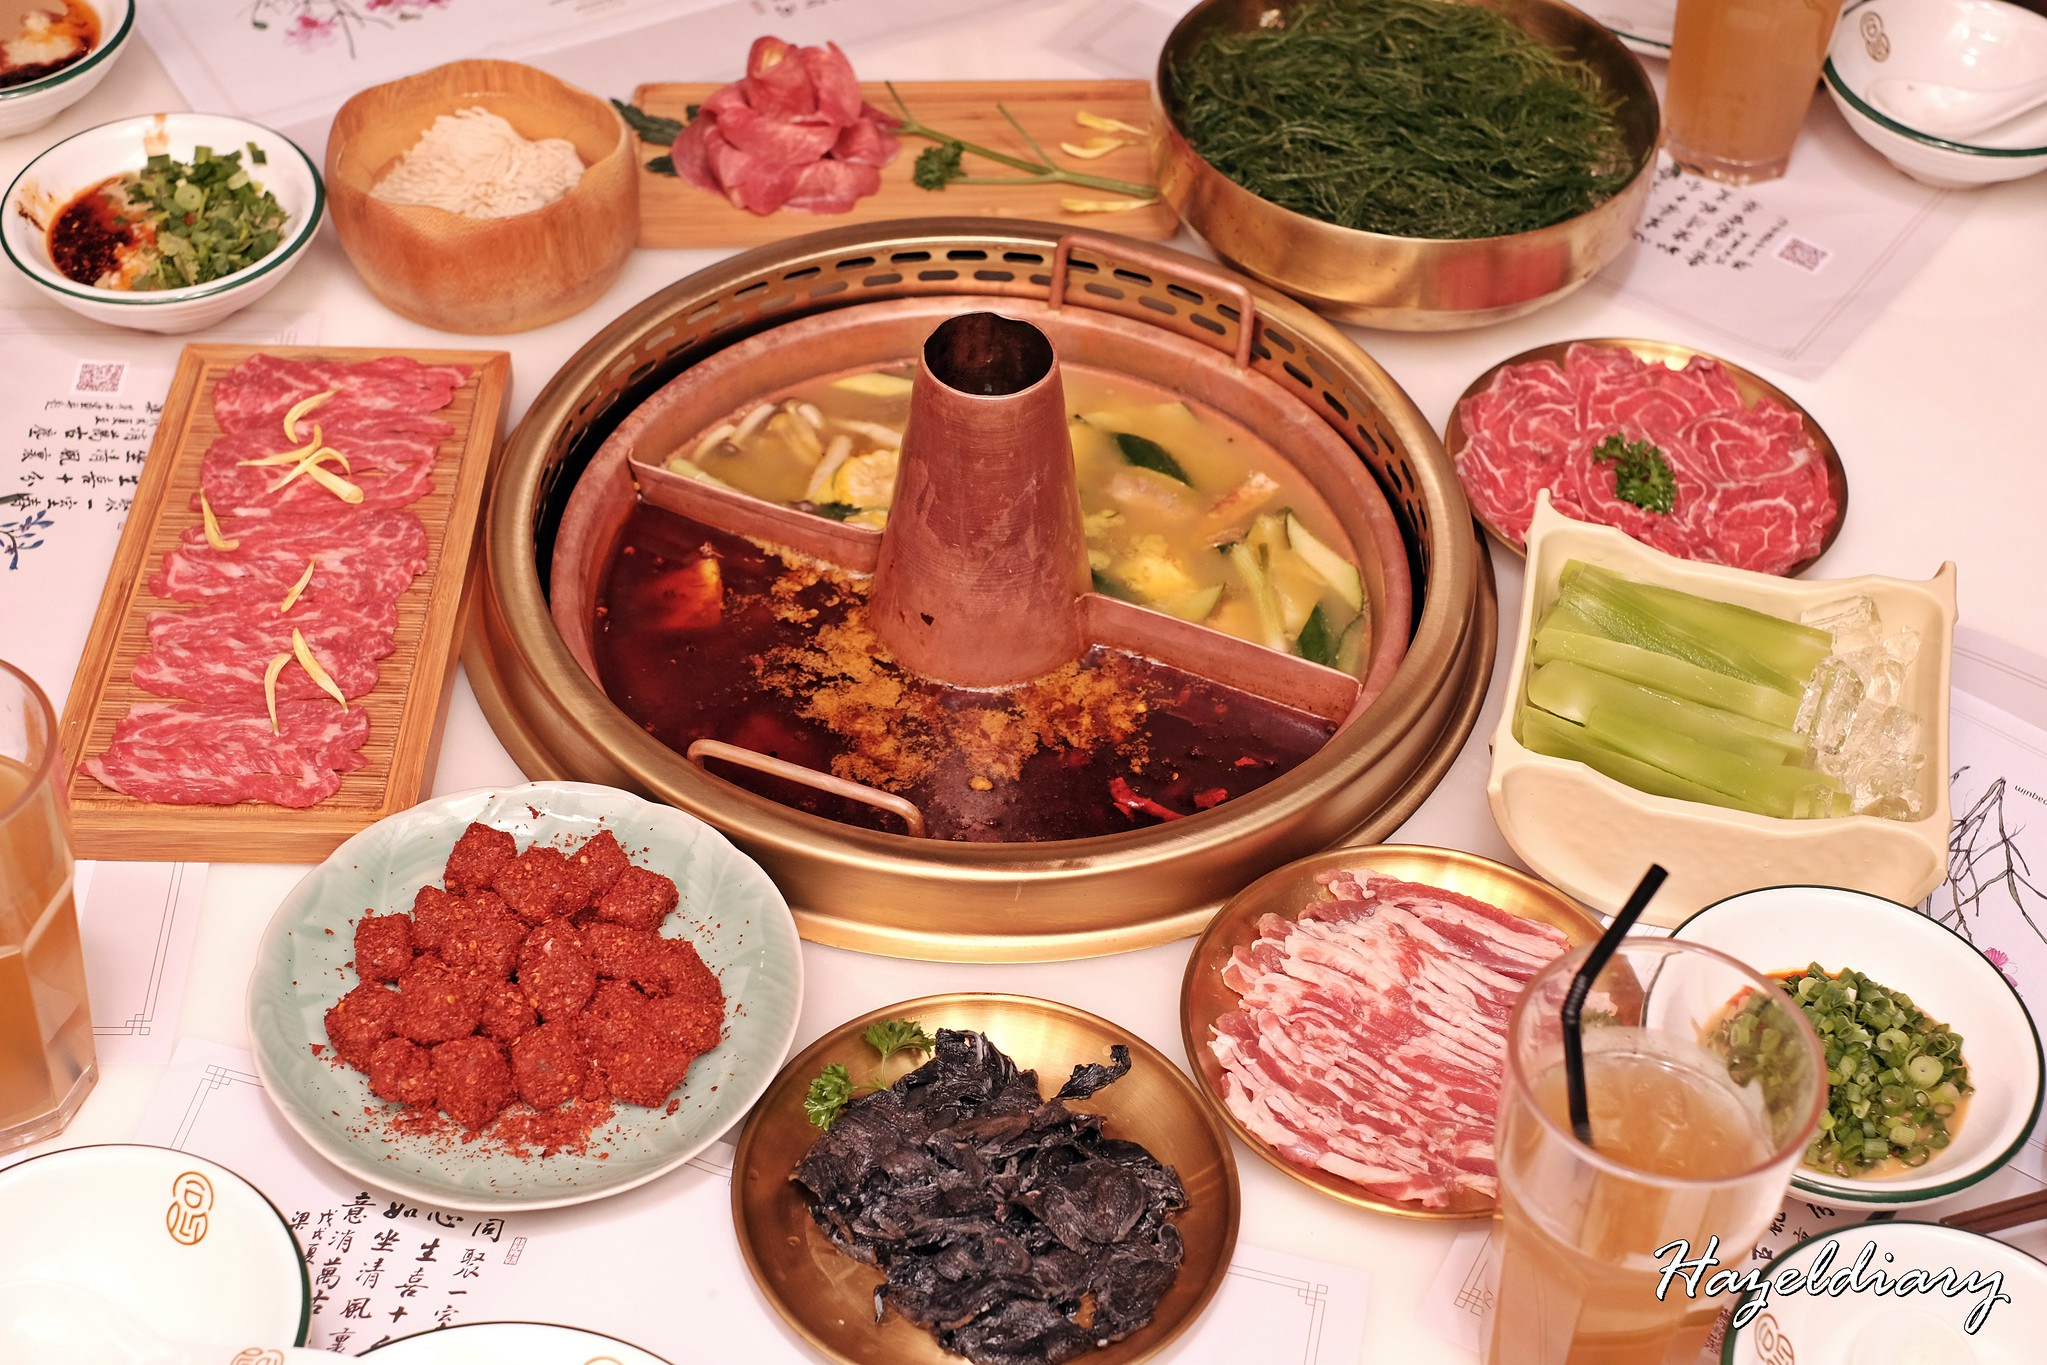 [SG EATS] Tong Xin Ru Yi Traditional Hotpot (同心如意传统铜火锅)– Flavourful Slow-cooked Soup Bases Brimming with Ingredients at Lor Telok | Raffles Place